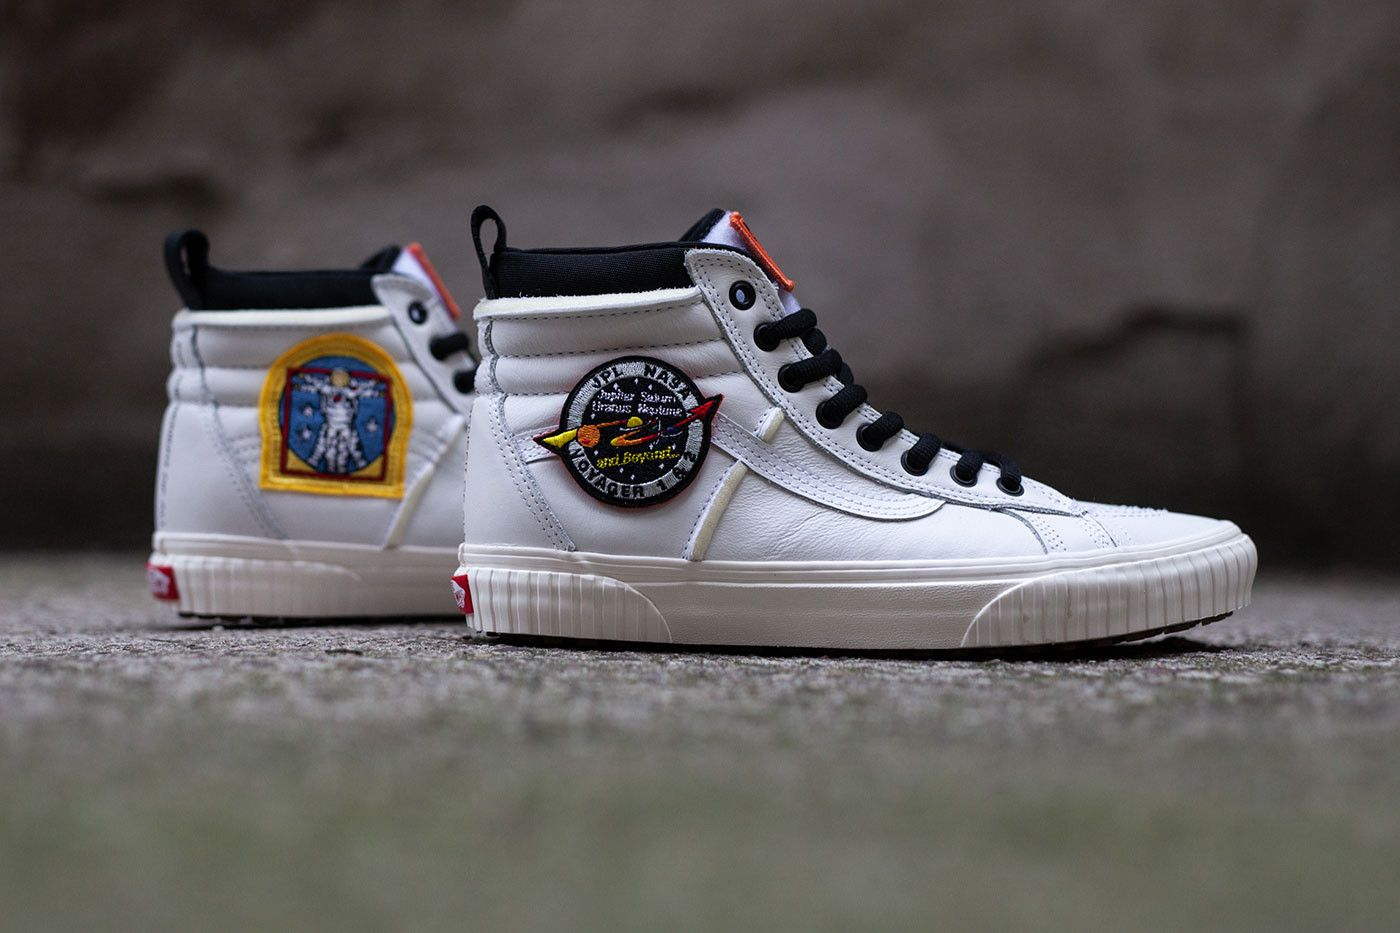 2568516db3 Vans Nasa Space Voyager Capsule Full Look Old Skool SK8-Hi True White  Firecracker orange Black info Release Date